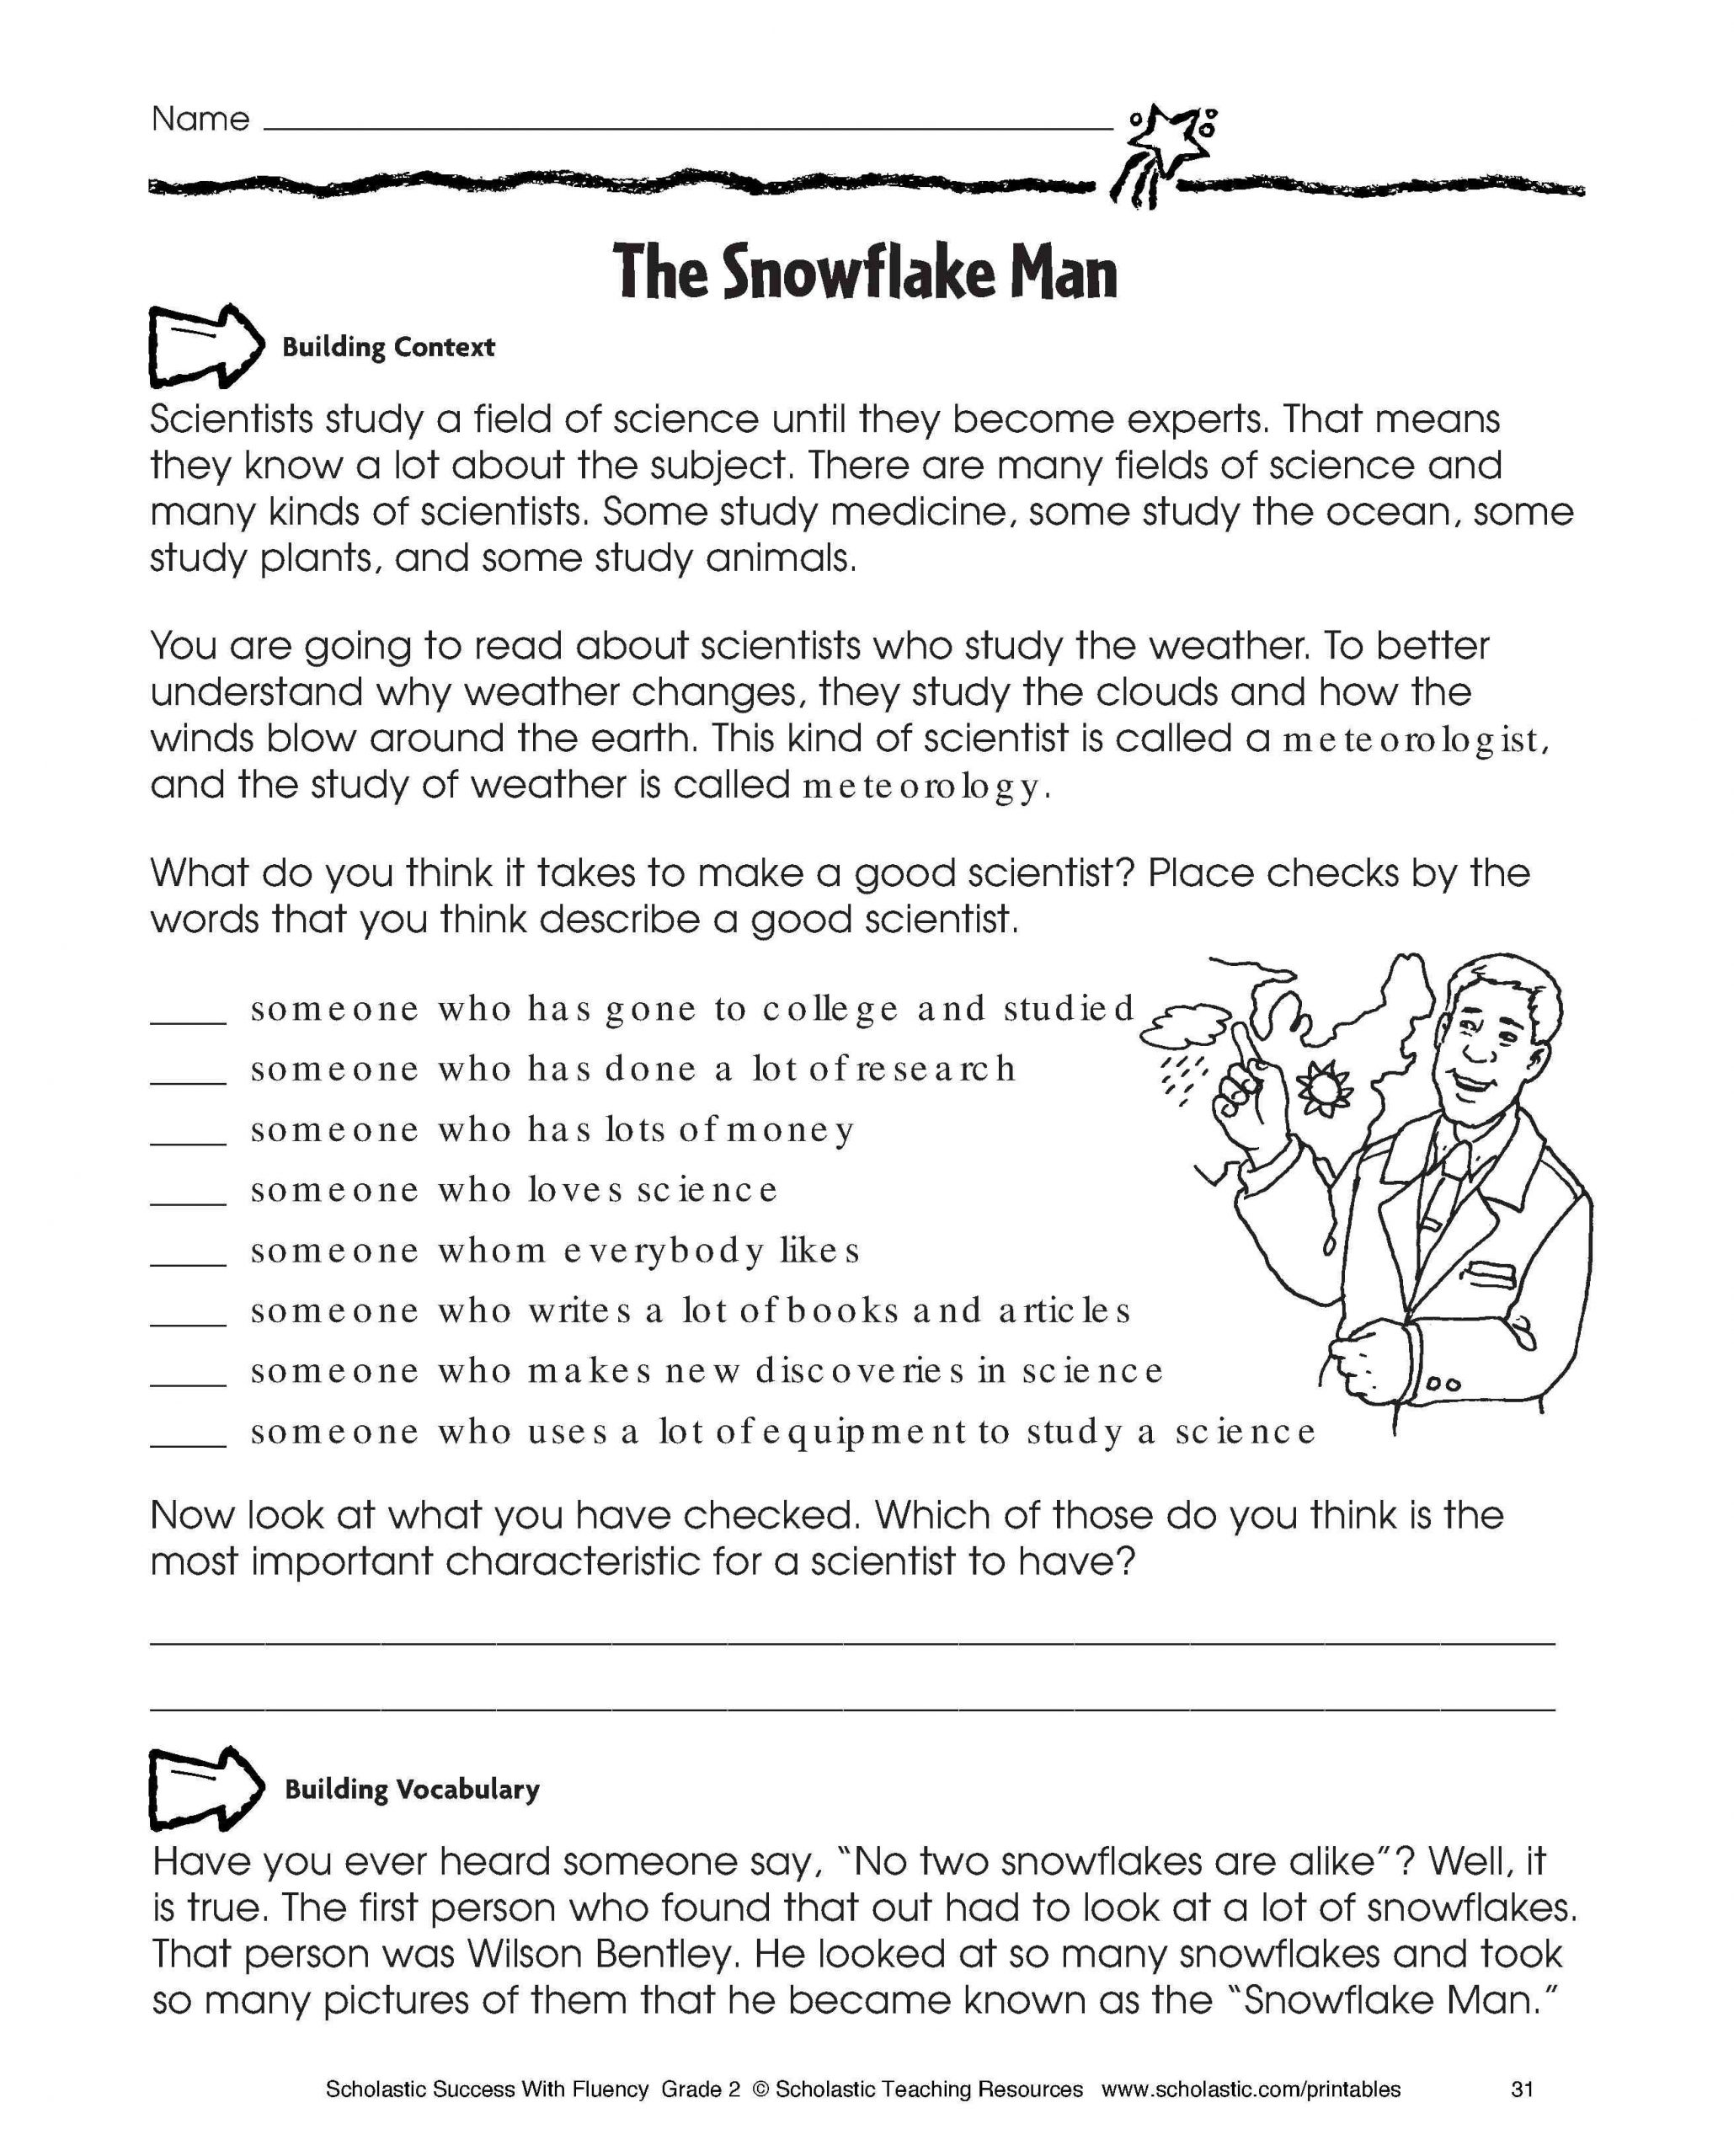 Informational Text Worksheets Middle School Free Reading for Kindergarten